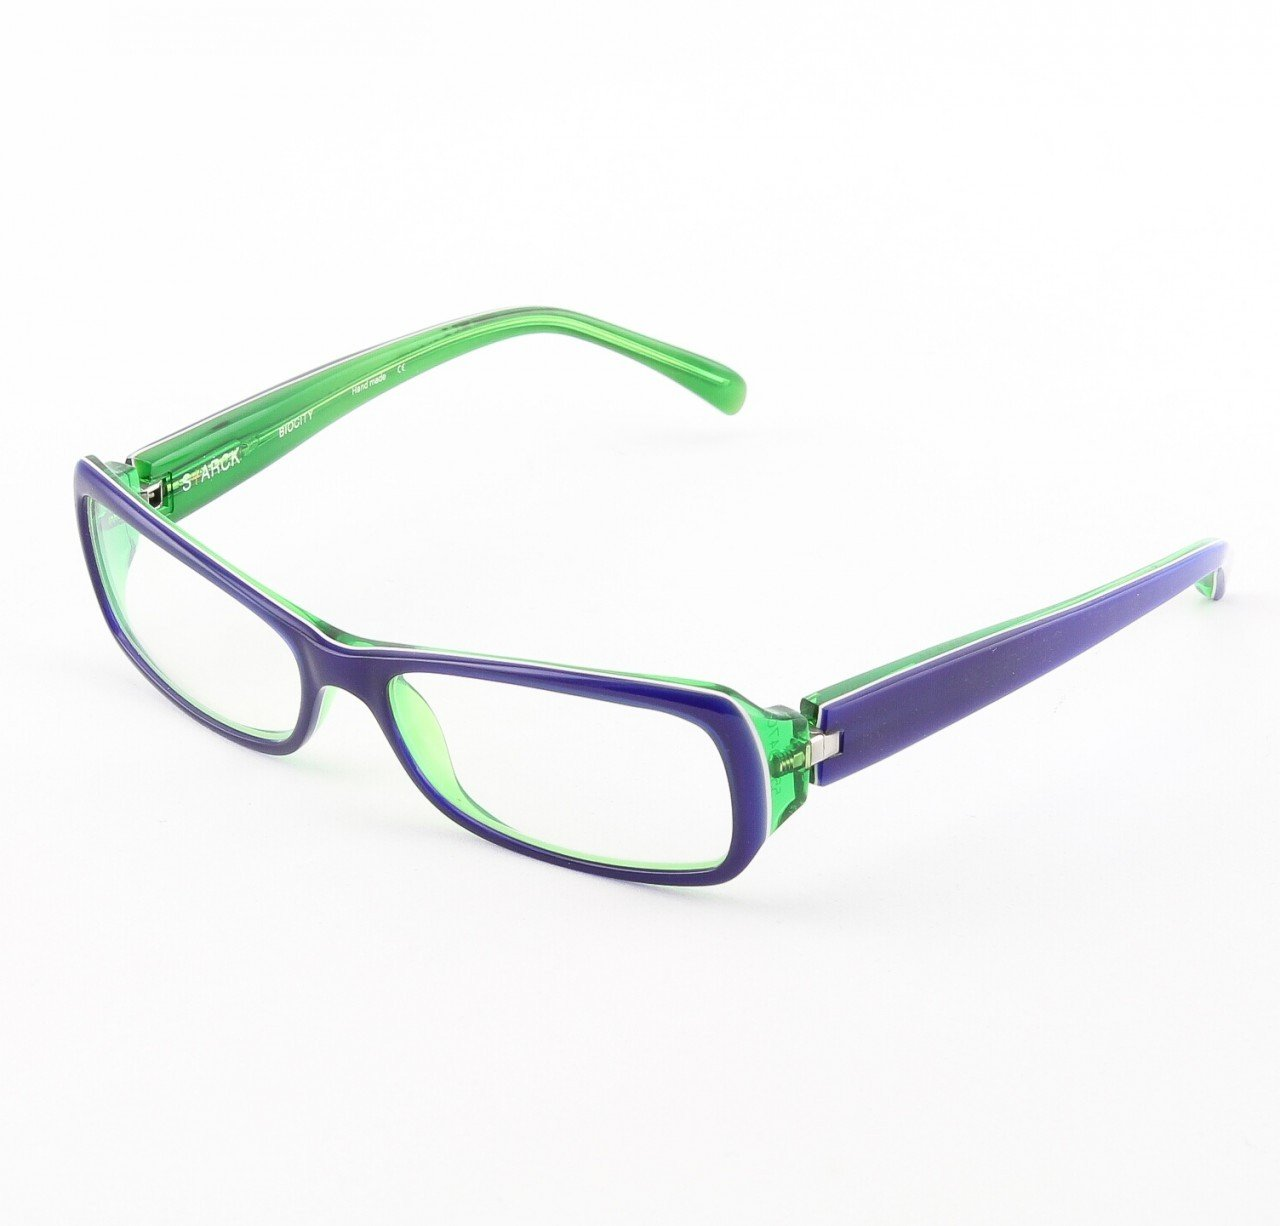 Starck Eyeglasses P0515 Col. 22 Blue, Lime Green with Clear Lenses